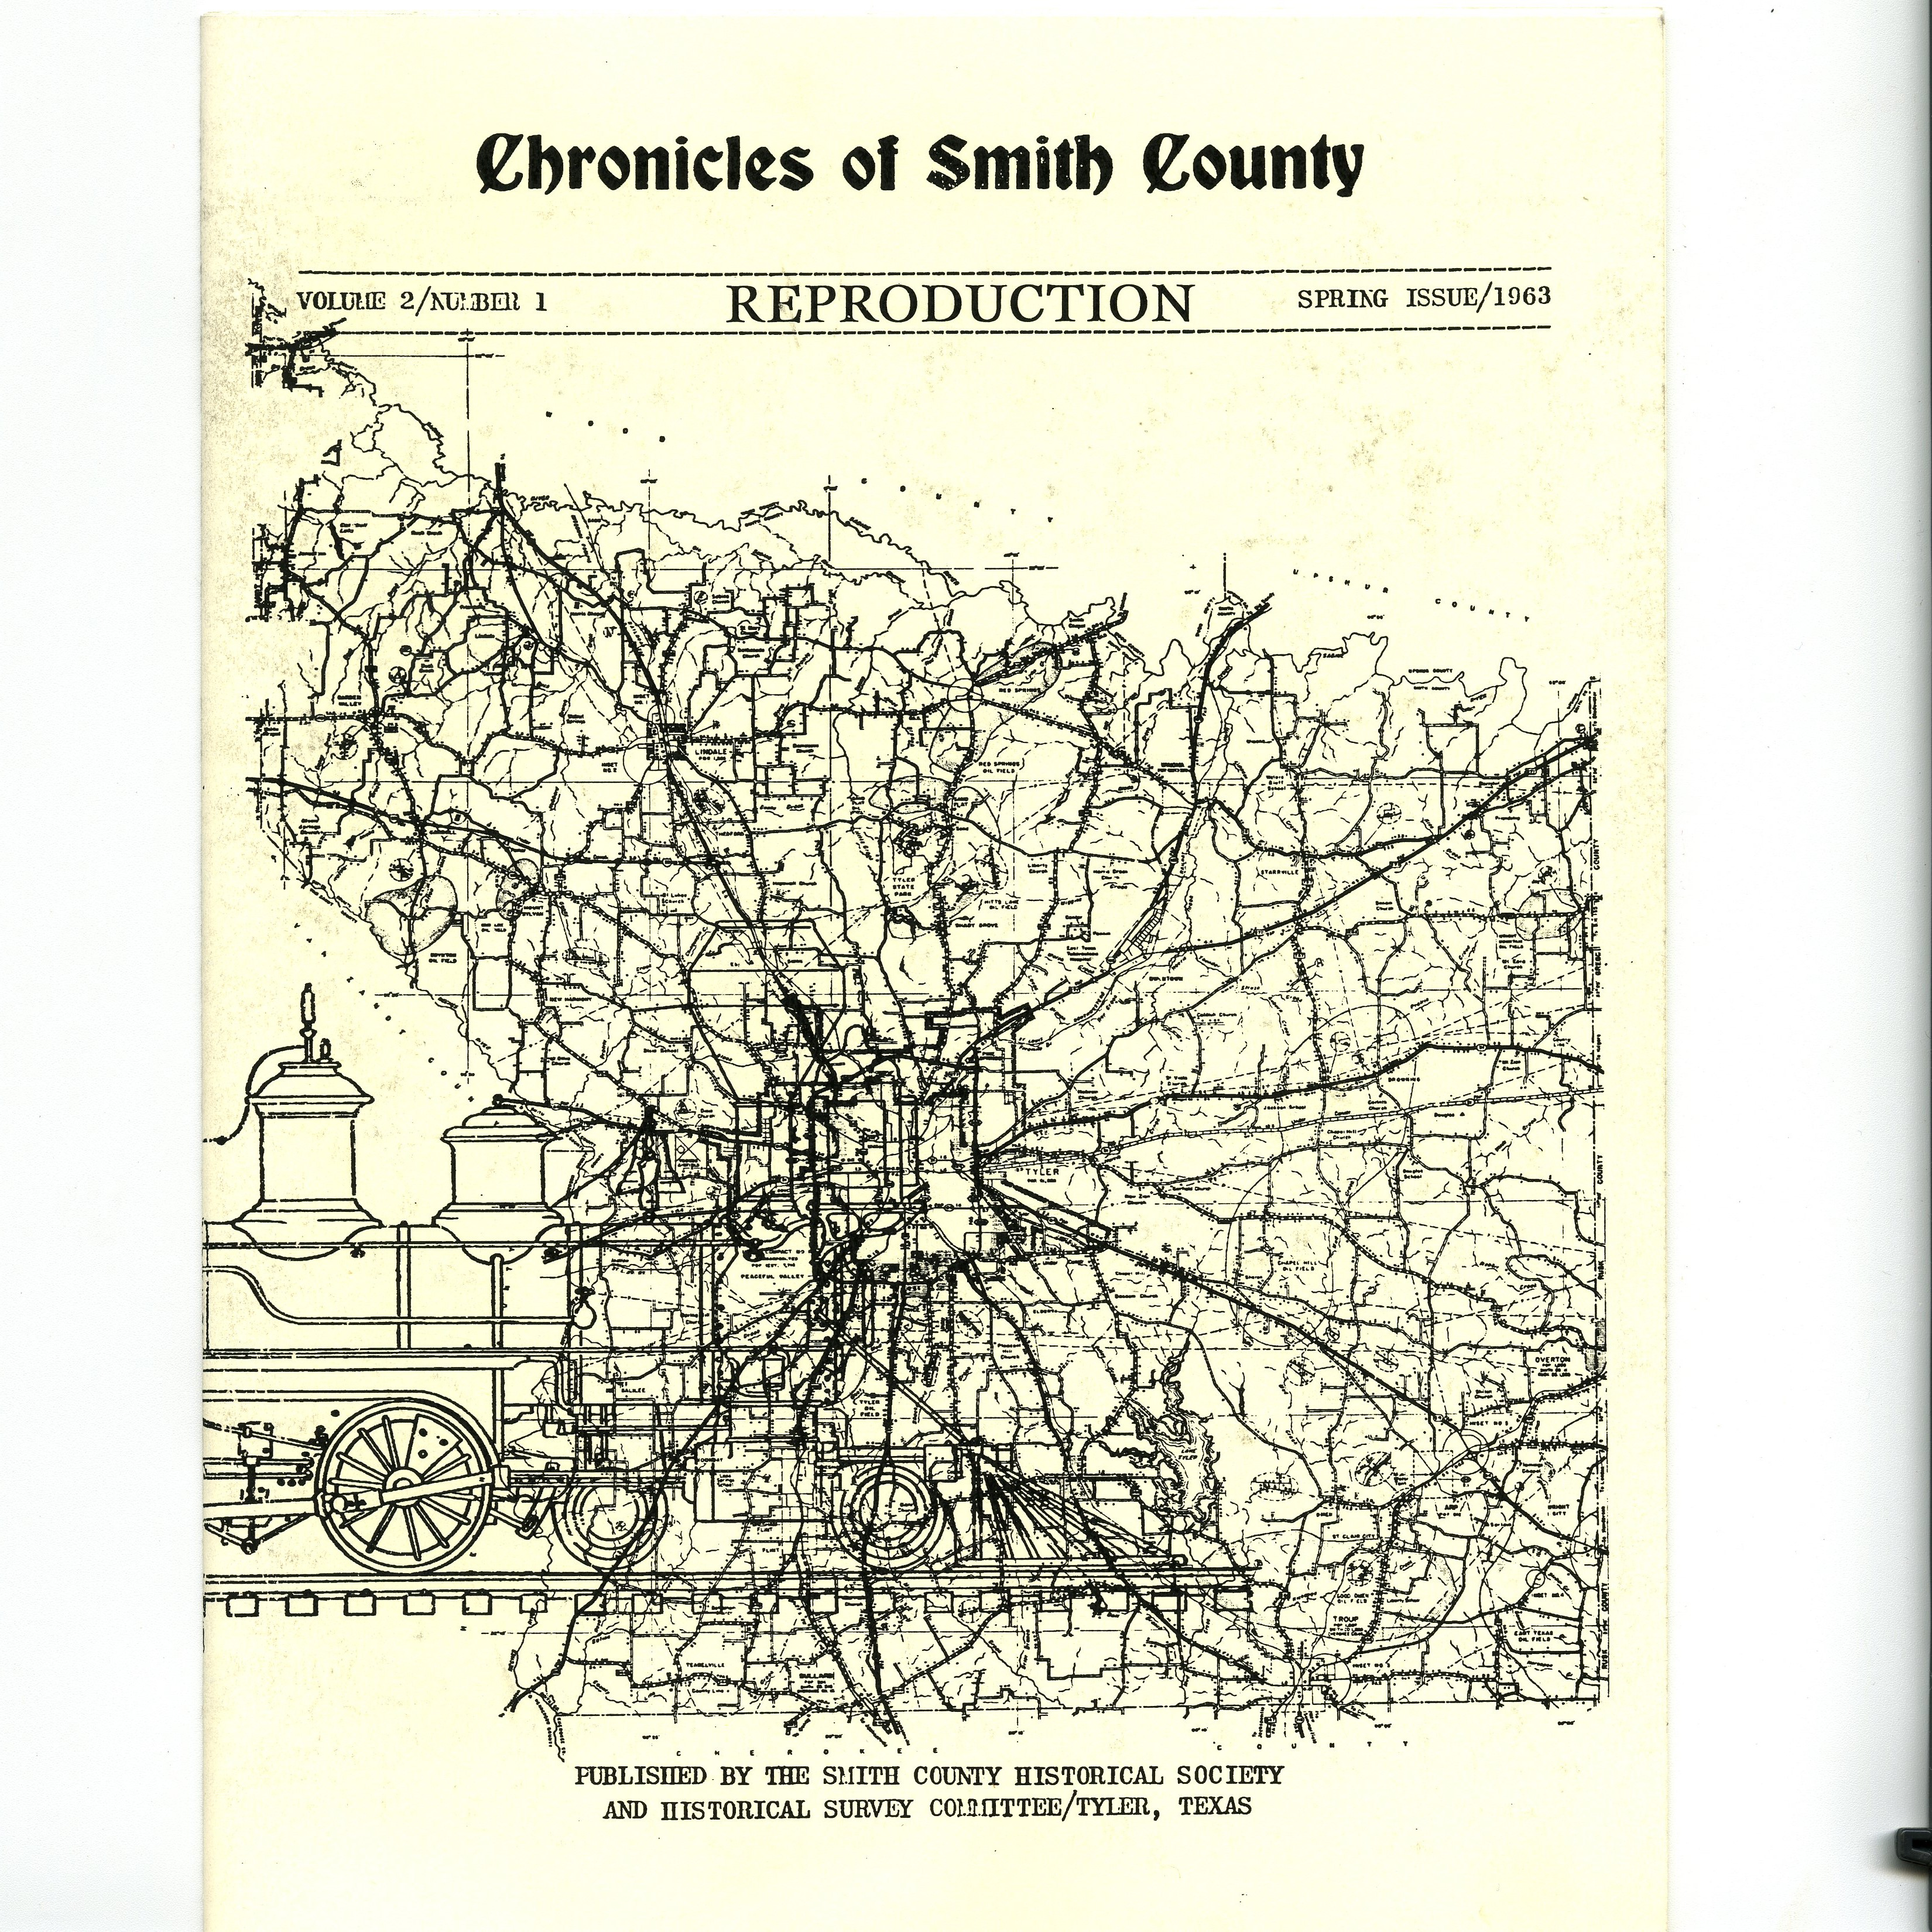 Chronicles of Smith County, Texas, Volume 2 Issue 1 Spring 1963